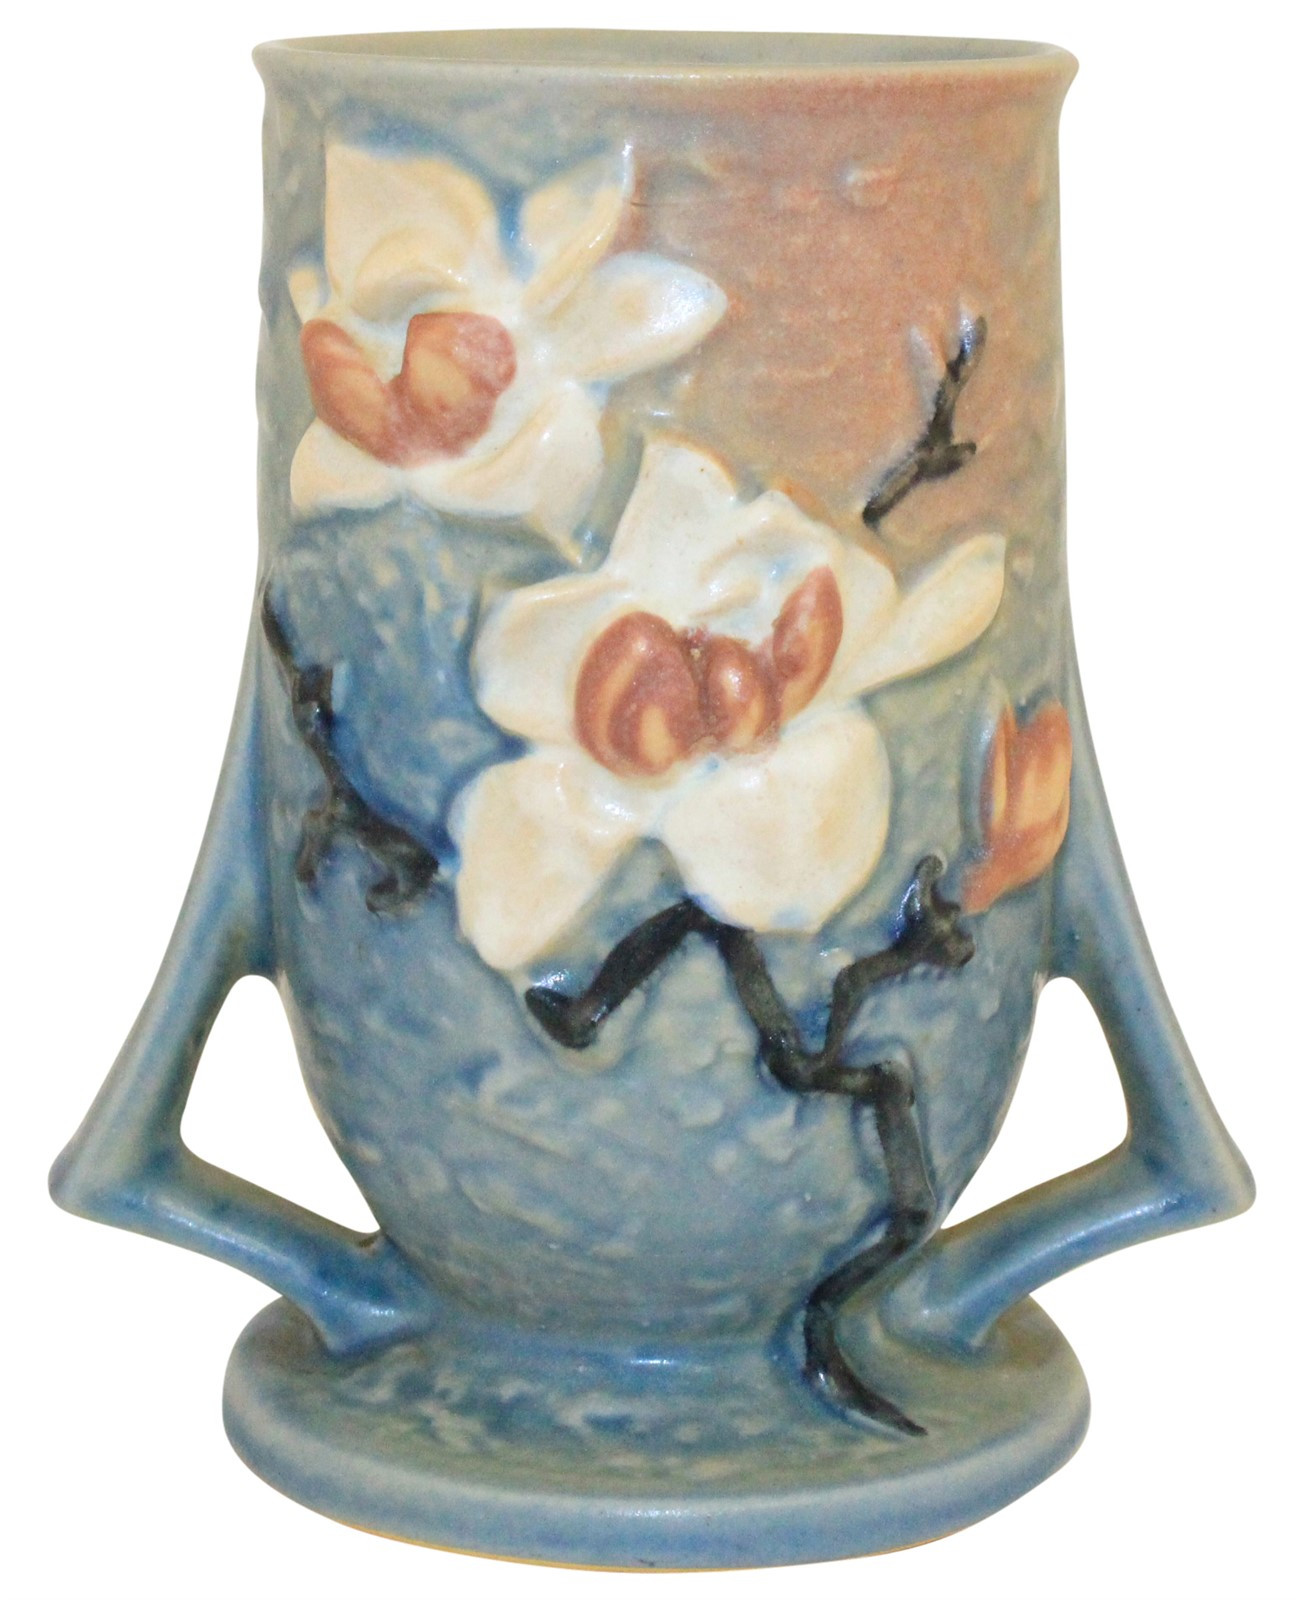 roseville double bud vase of just art pottery from just art pottery in roseville pottery magnolia blue vase 87 6